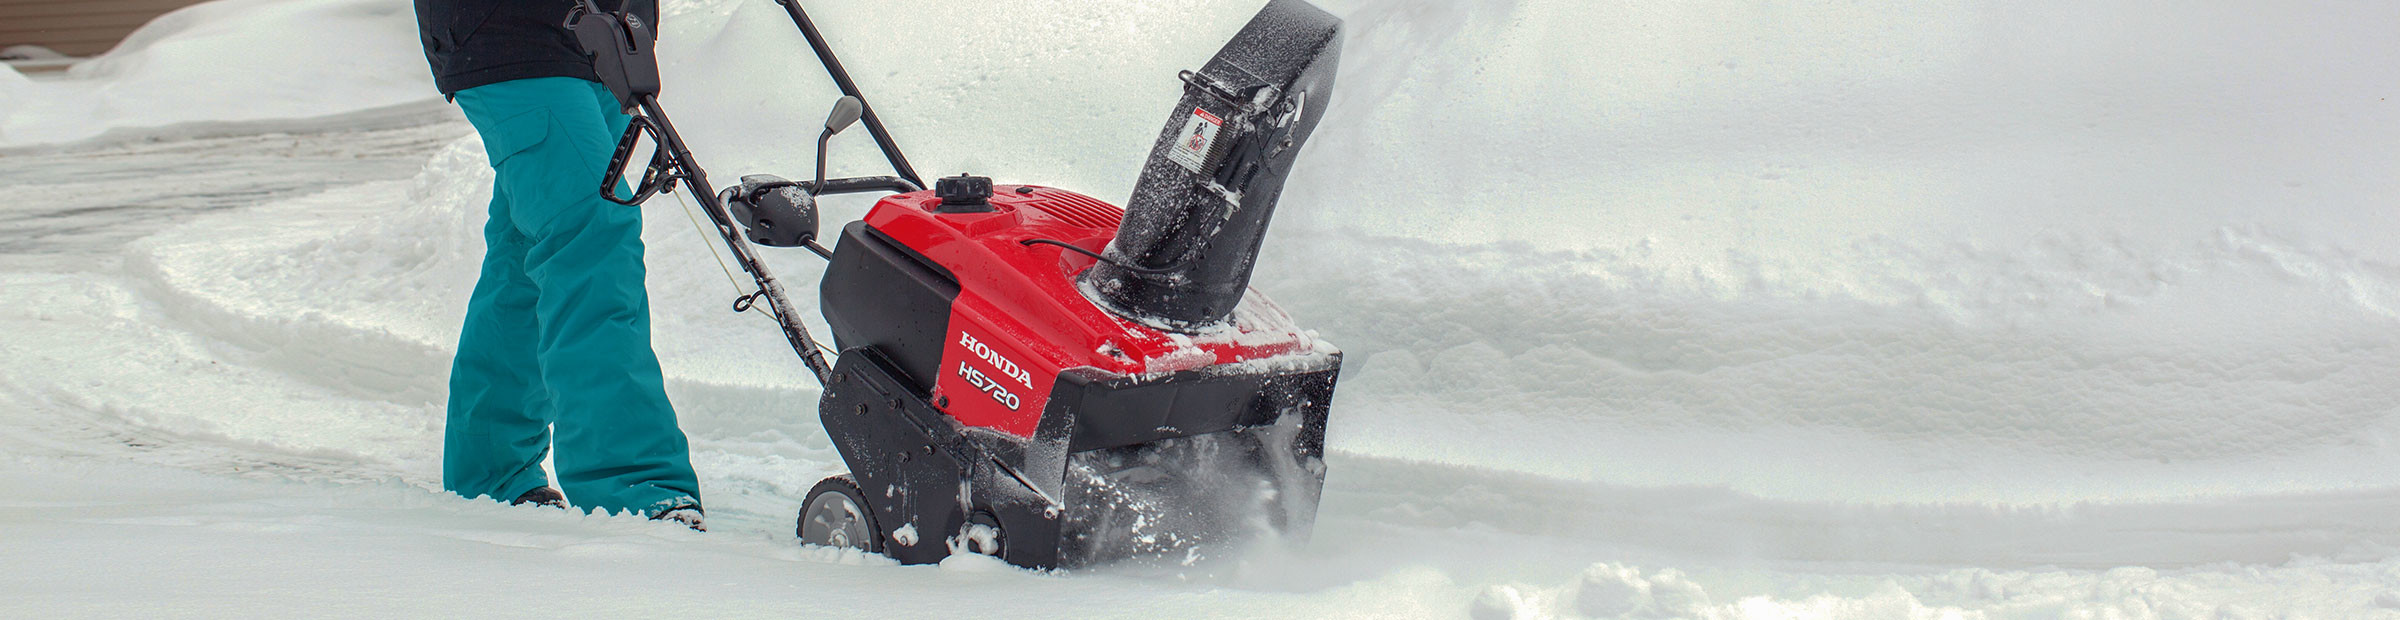 2020 Honda Power Equipment Snowblowers